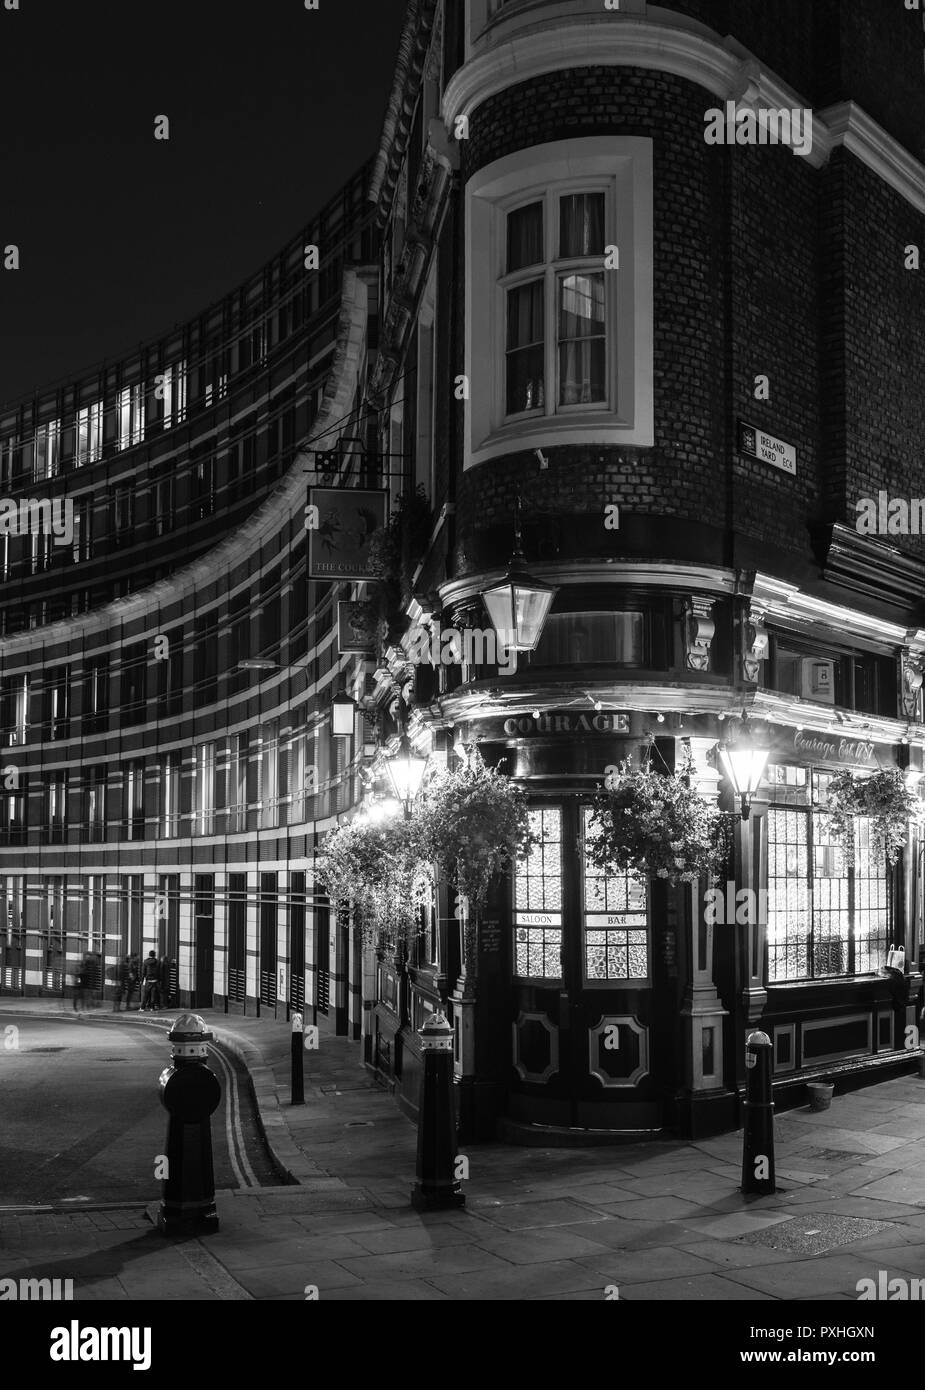 Night image of The Cockpit public house with hanging flower baskets on St Andrews Hill, London - Stock Image